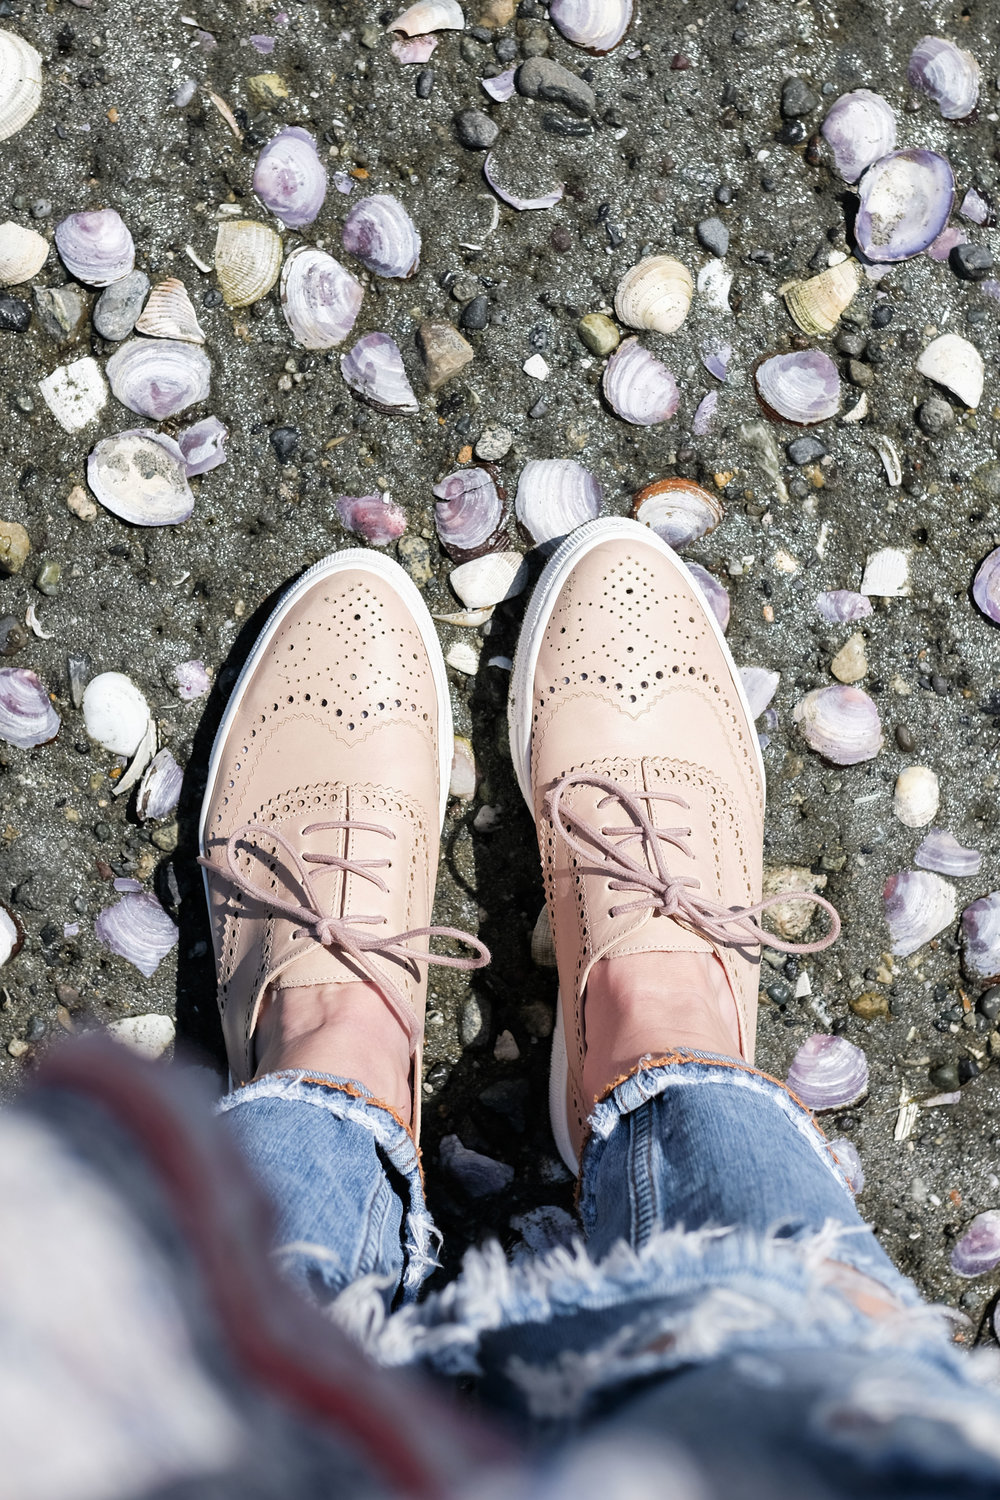 San Juan Islands Washington.  What to do for a weekend in the San Juan Islands.  Places to stay and eat on Orcas Island and Friday Harbor. Shelly's London Kimmie platform sneakers.